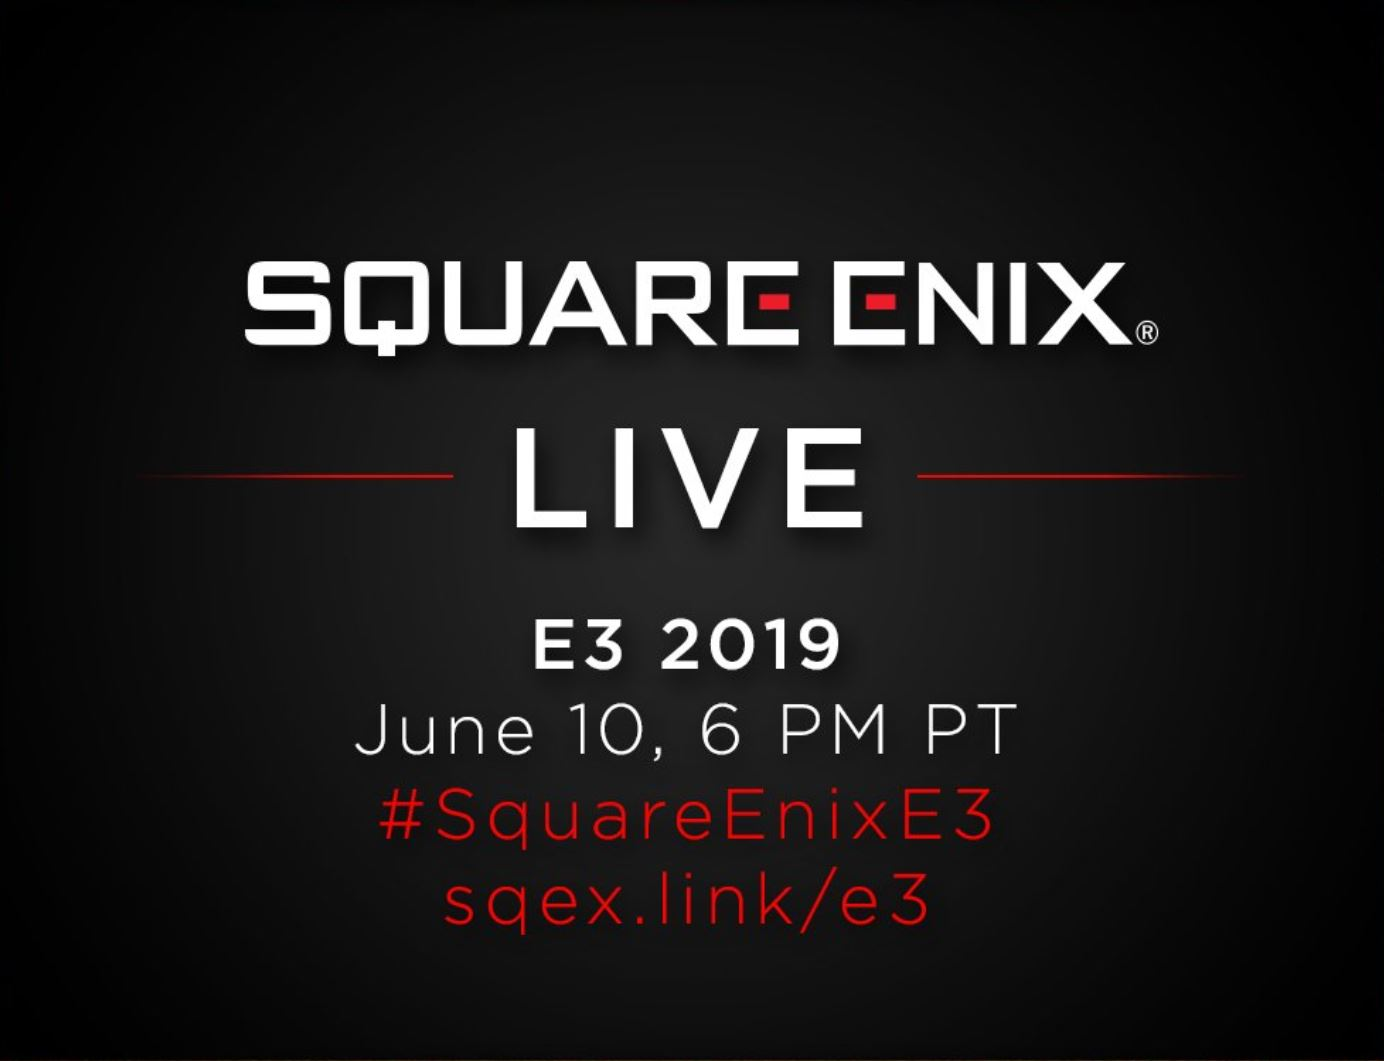 Square Enix Confirms Their E3 Conference Will Return This Year